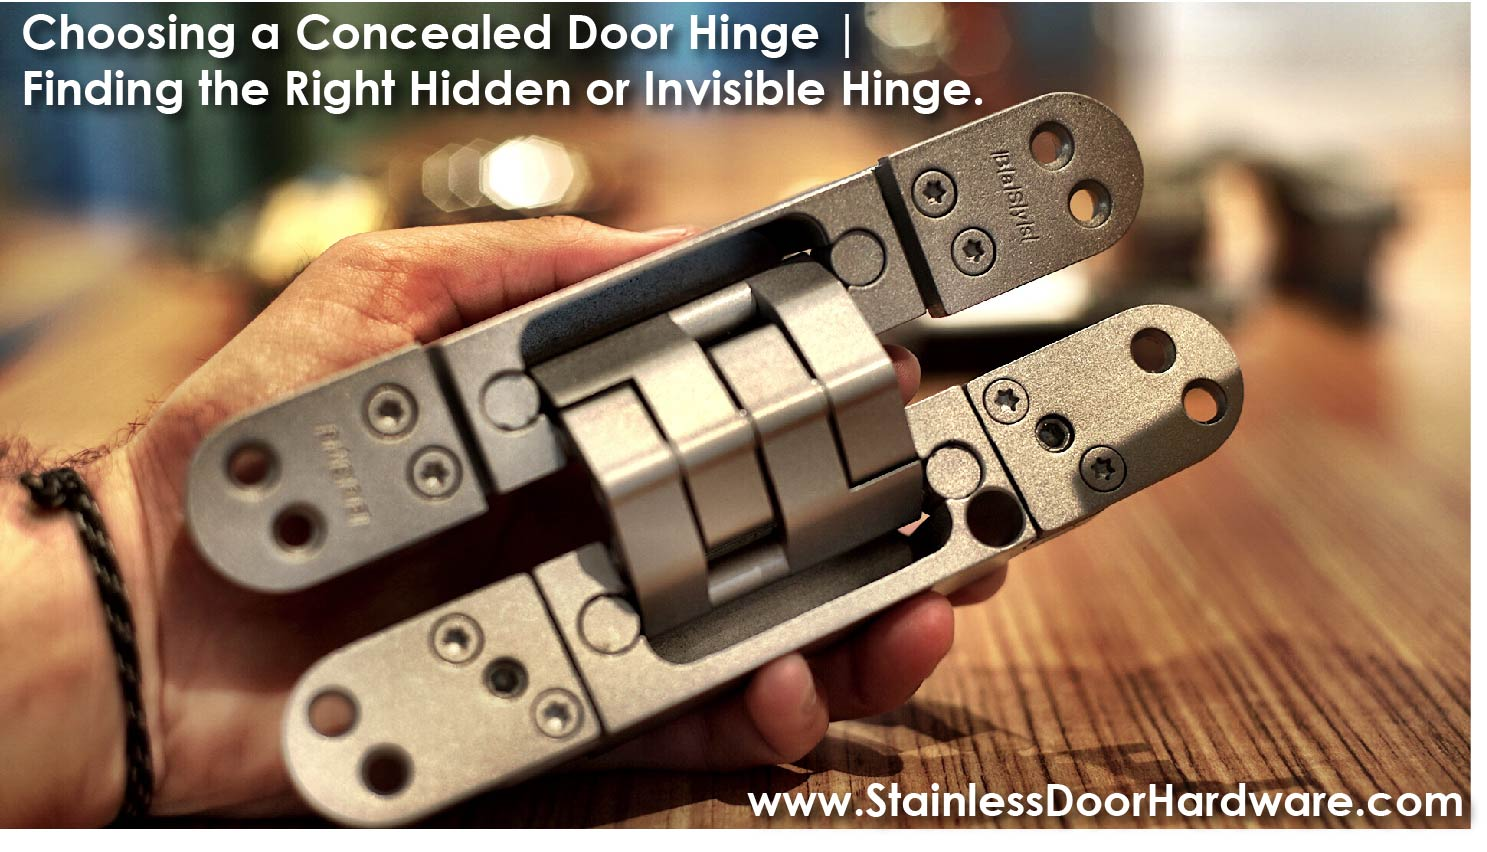 Door hinging systems make your door hinges disappear with the concealed door hinge modern hardware eventelaan Gallery